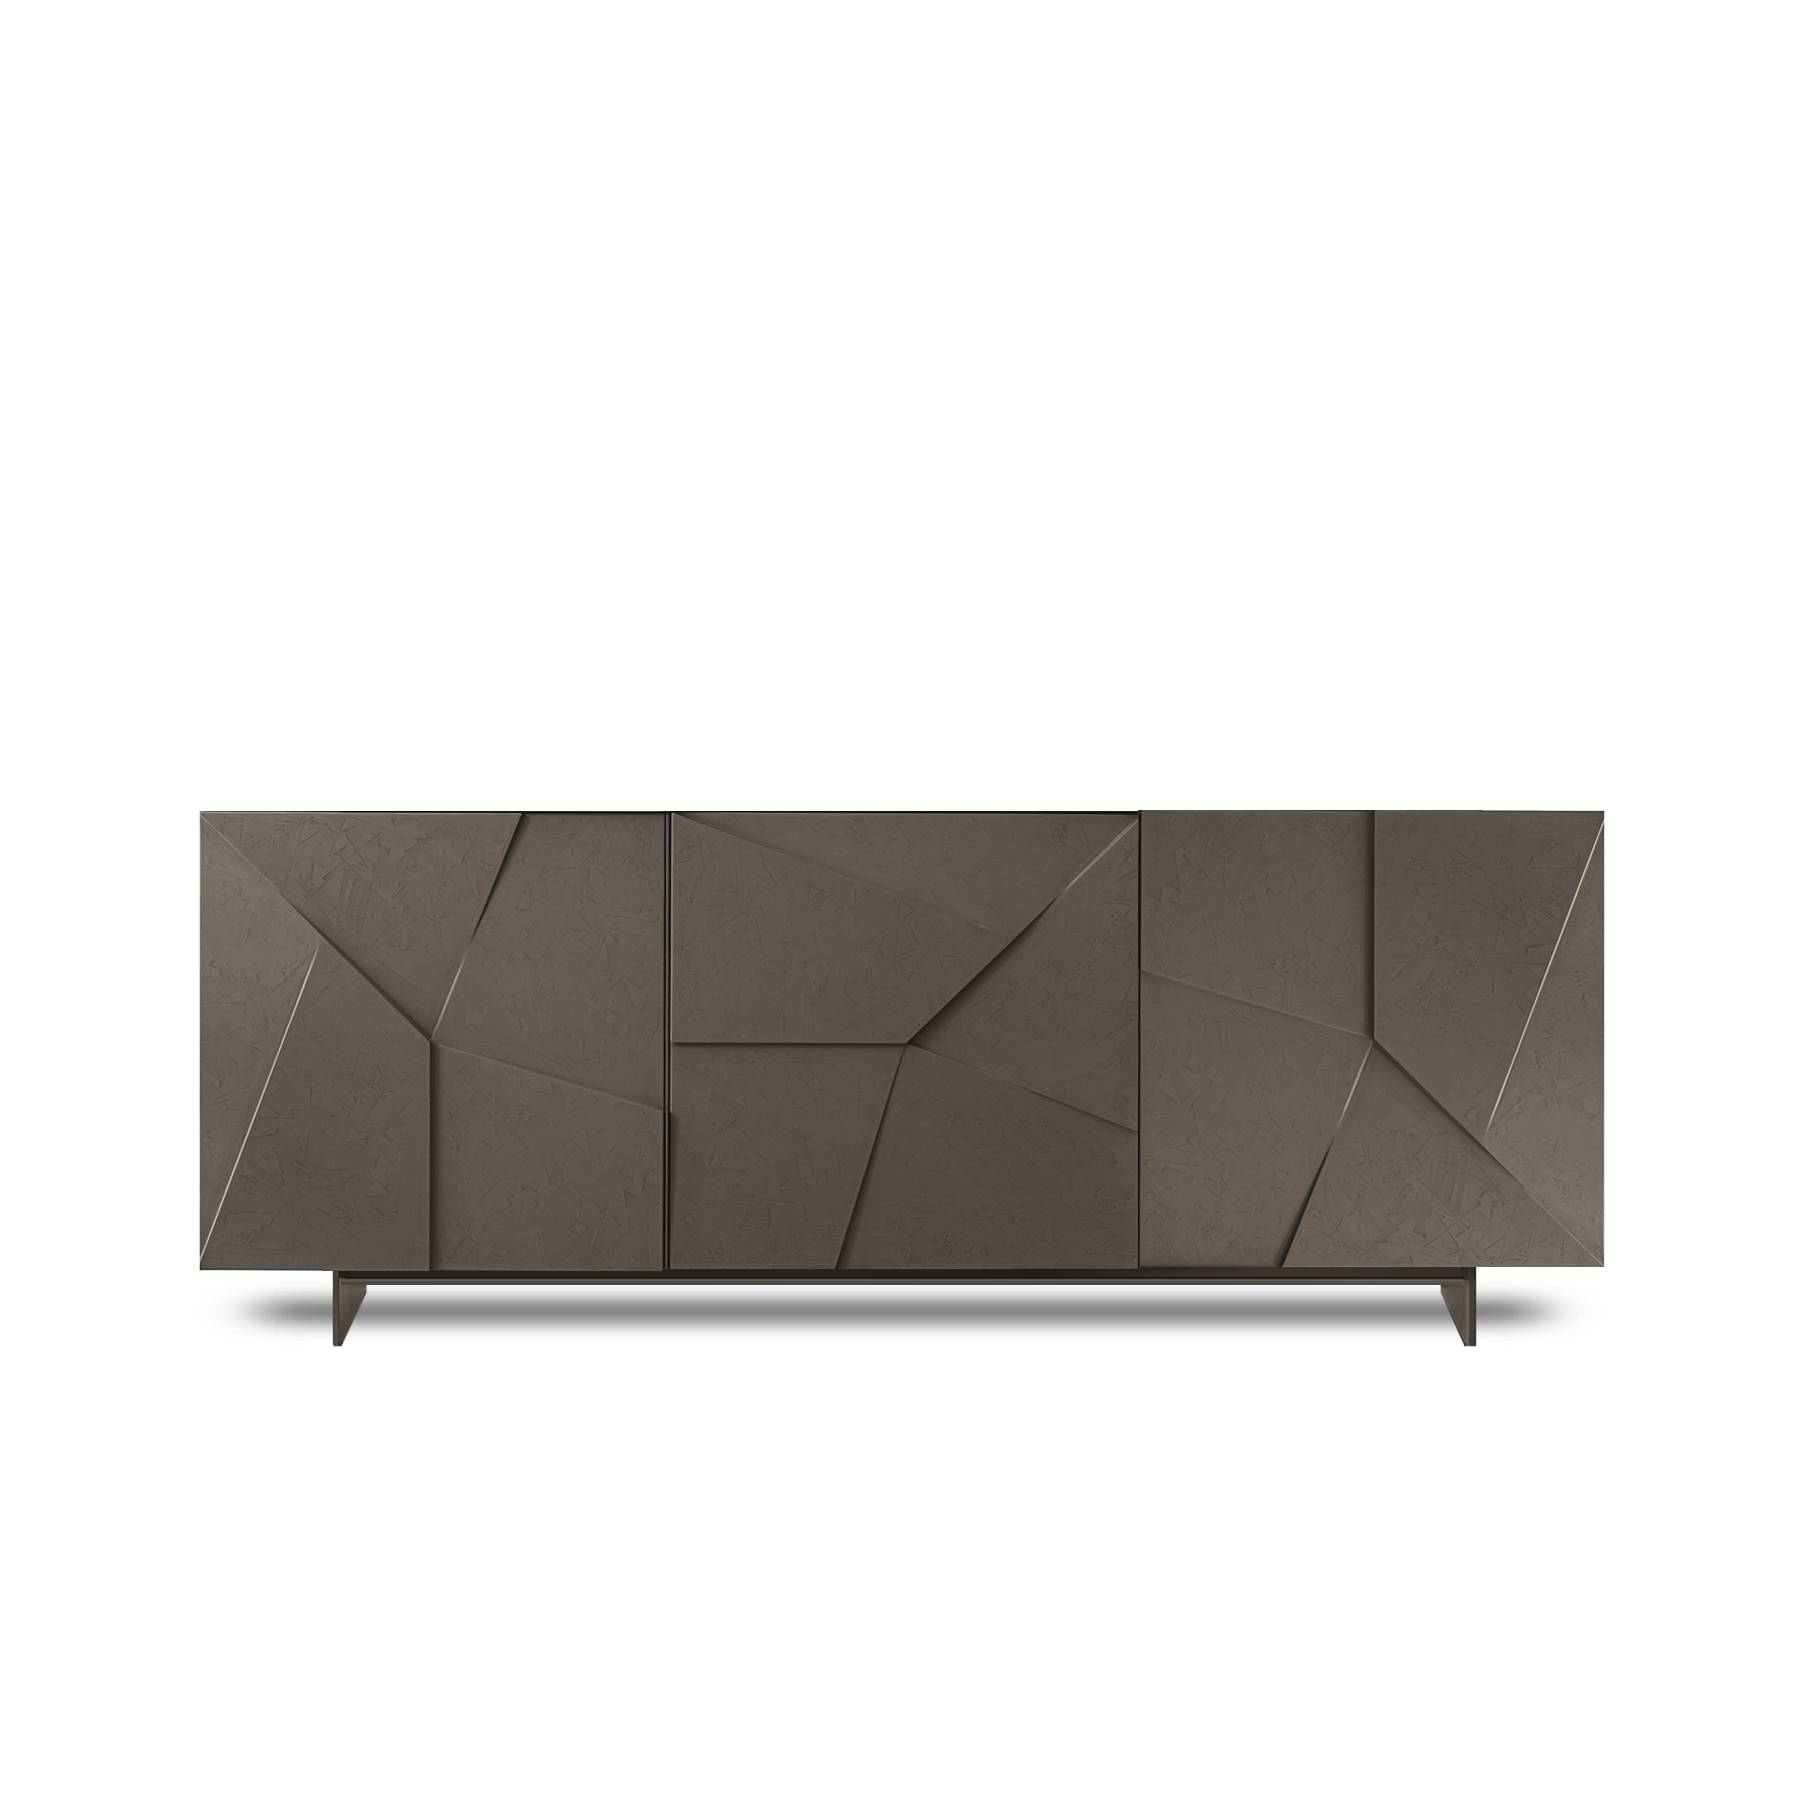 Modern Contemporary Sideboards, Storage Units My Italian Living Ltd Regarding Modern Contemporary Sideboards (#13 of 20)